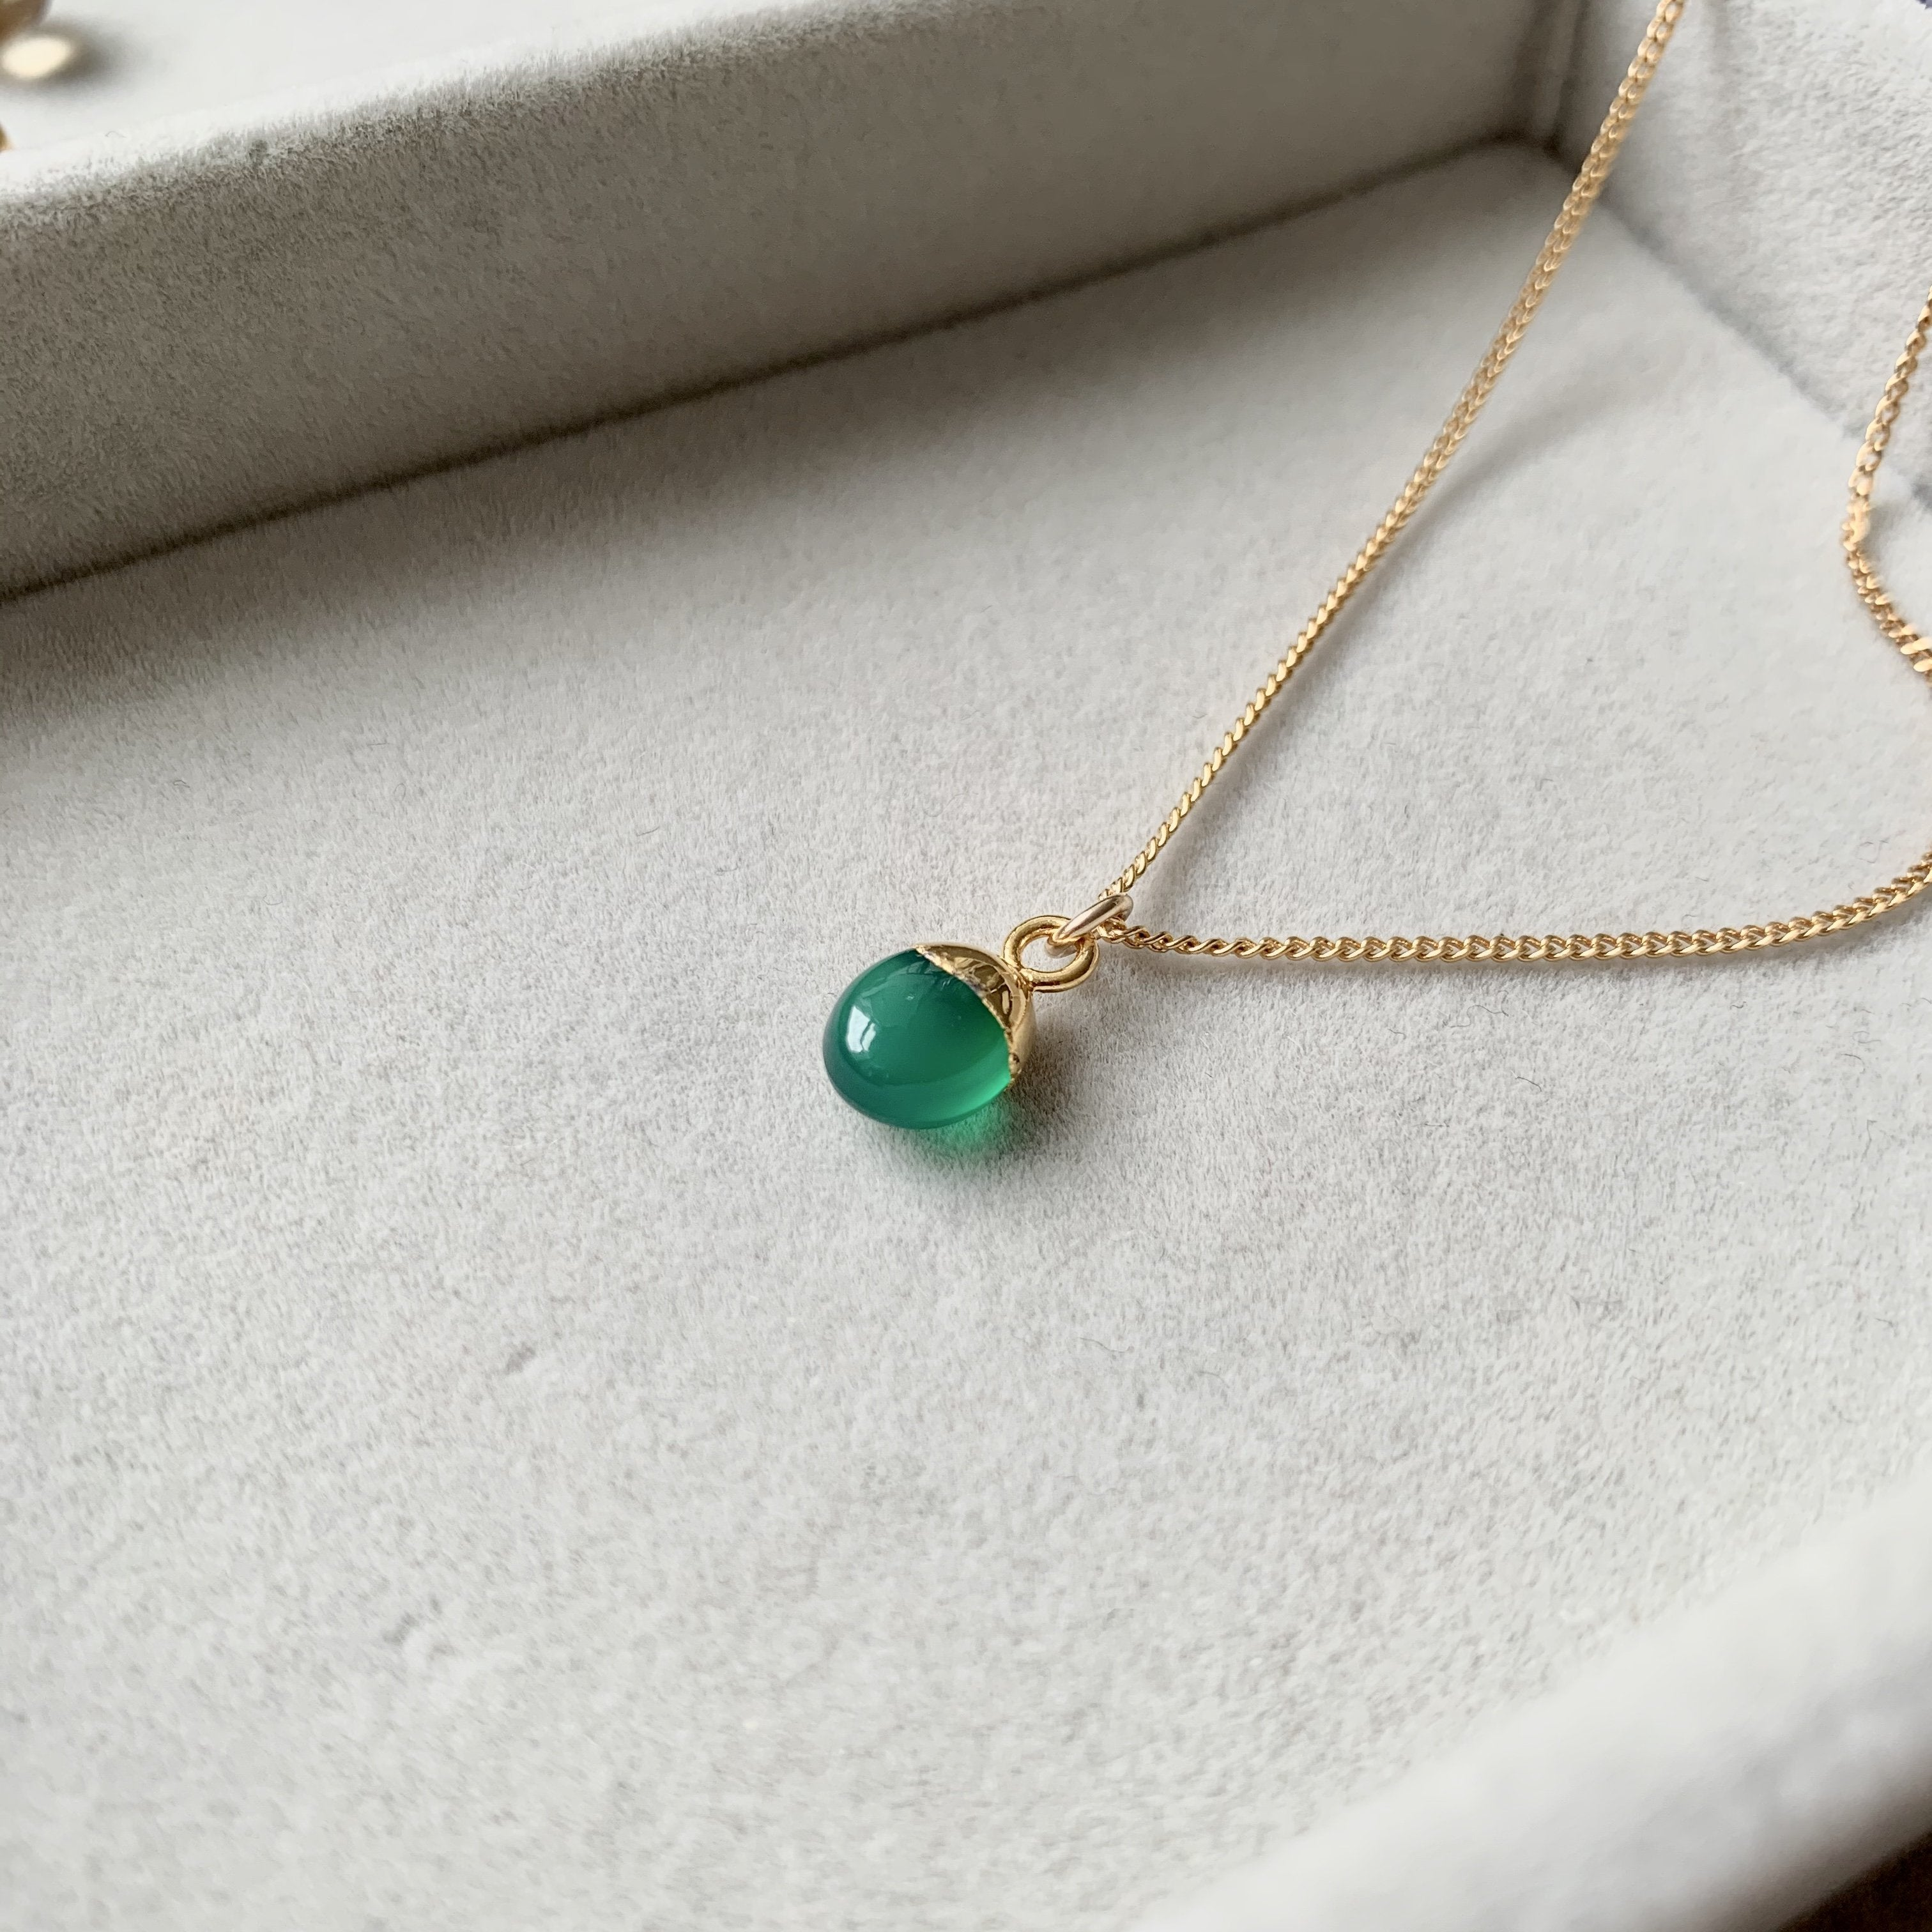 Tiny Tumbled Gemstone Necklace - Green Agate (Protection) (Pre order for Beginning May delivery) - Decadorn